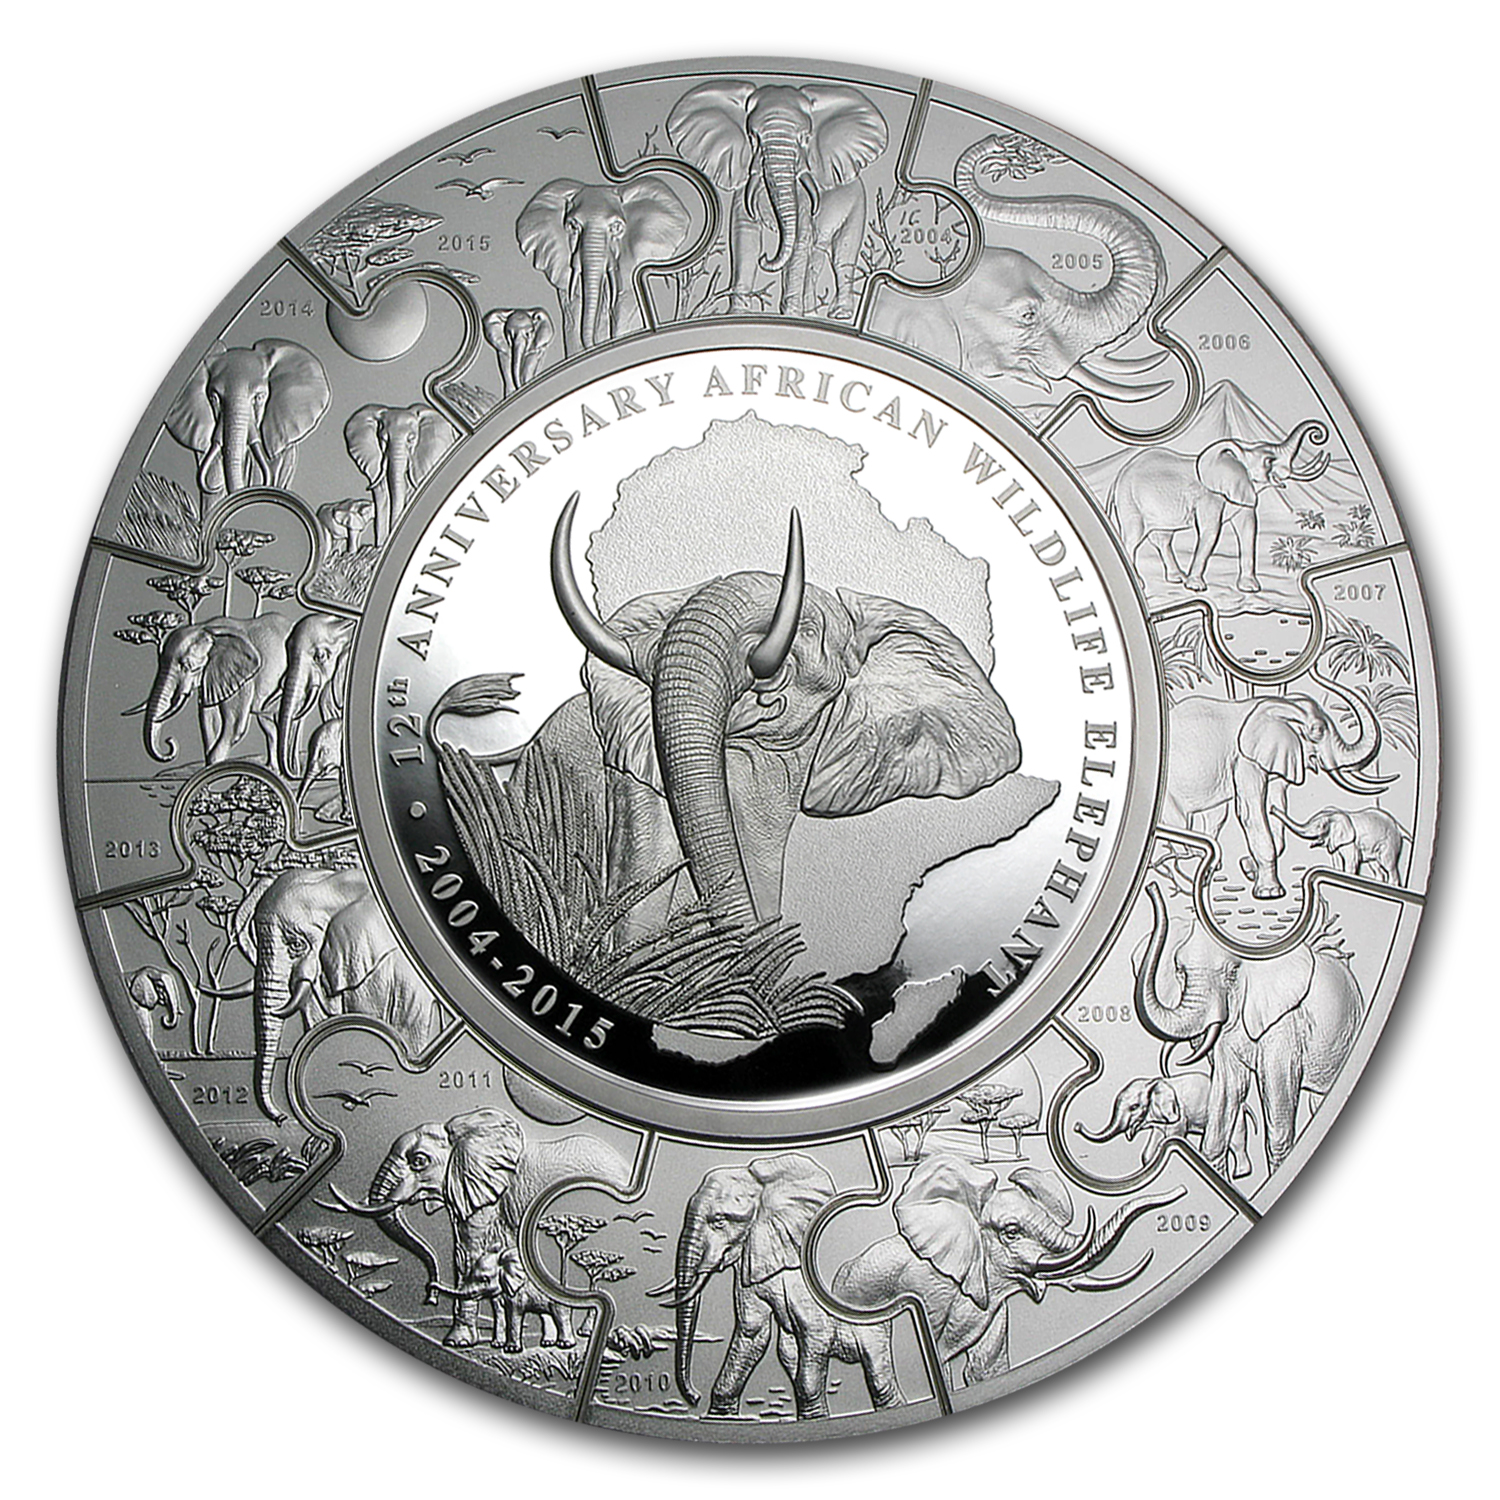 2015 Somalia 1 Kilo Silver Elephant Puzzle Coin Gold And